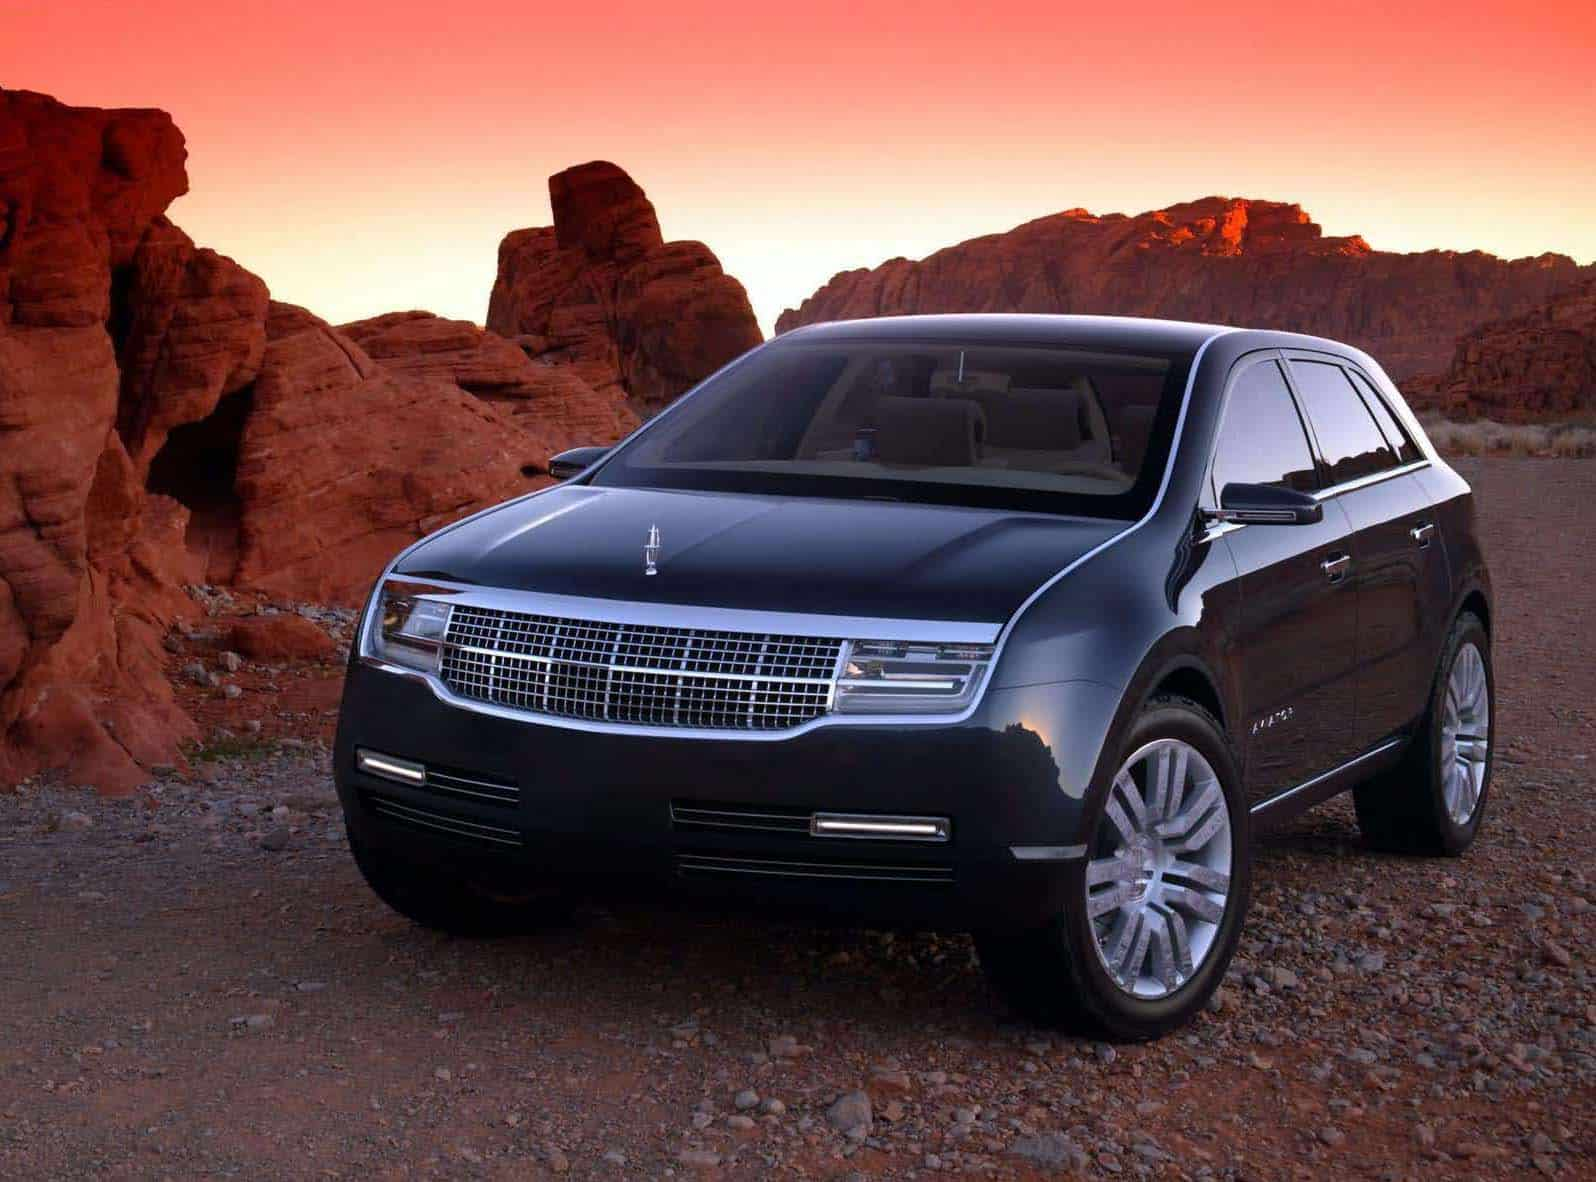 https://www.formtrends.com/wp-content/uploads/2015/03/lincoln-aviator_concept_2004.jpg